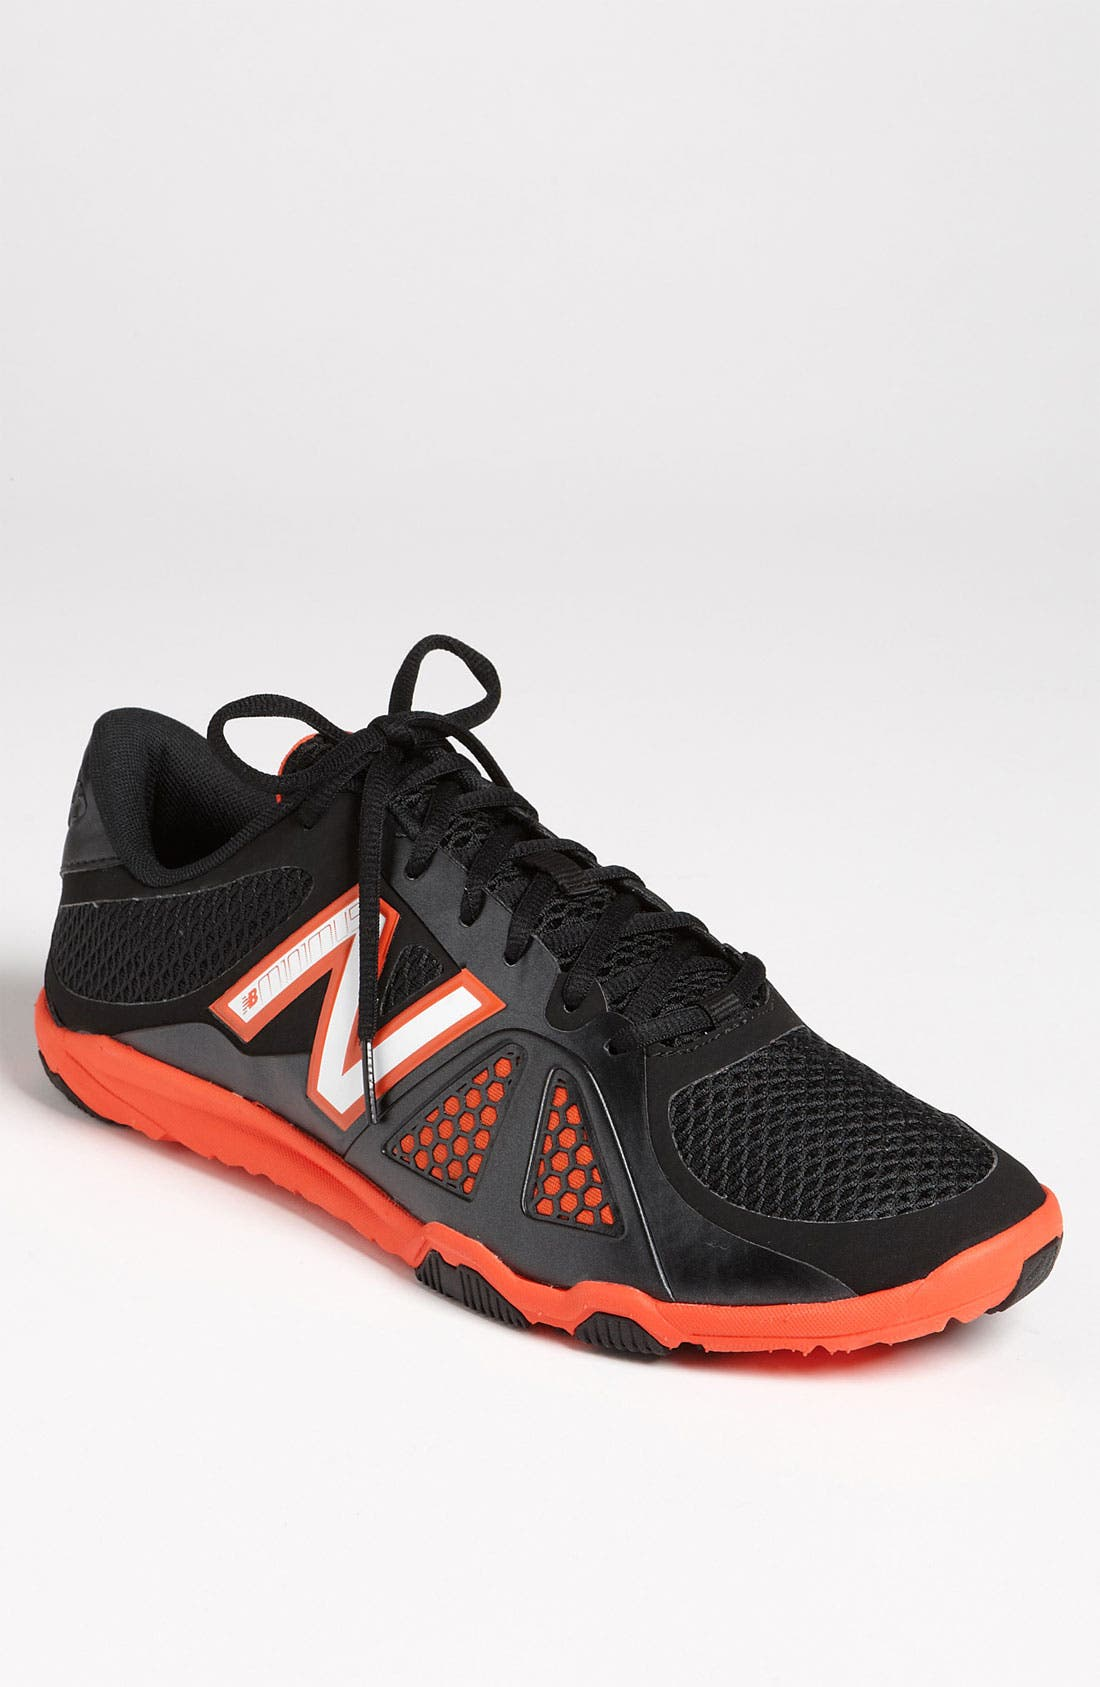 Alternate Image 1 Selected - New Balance 'Minimus' Training Shoe (Men)